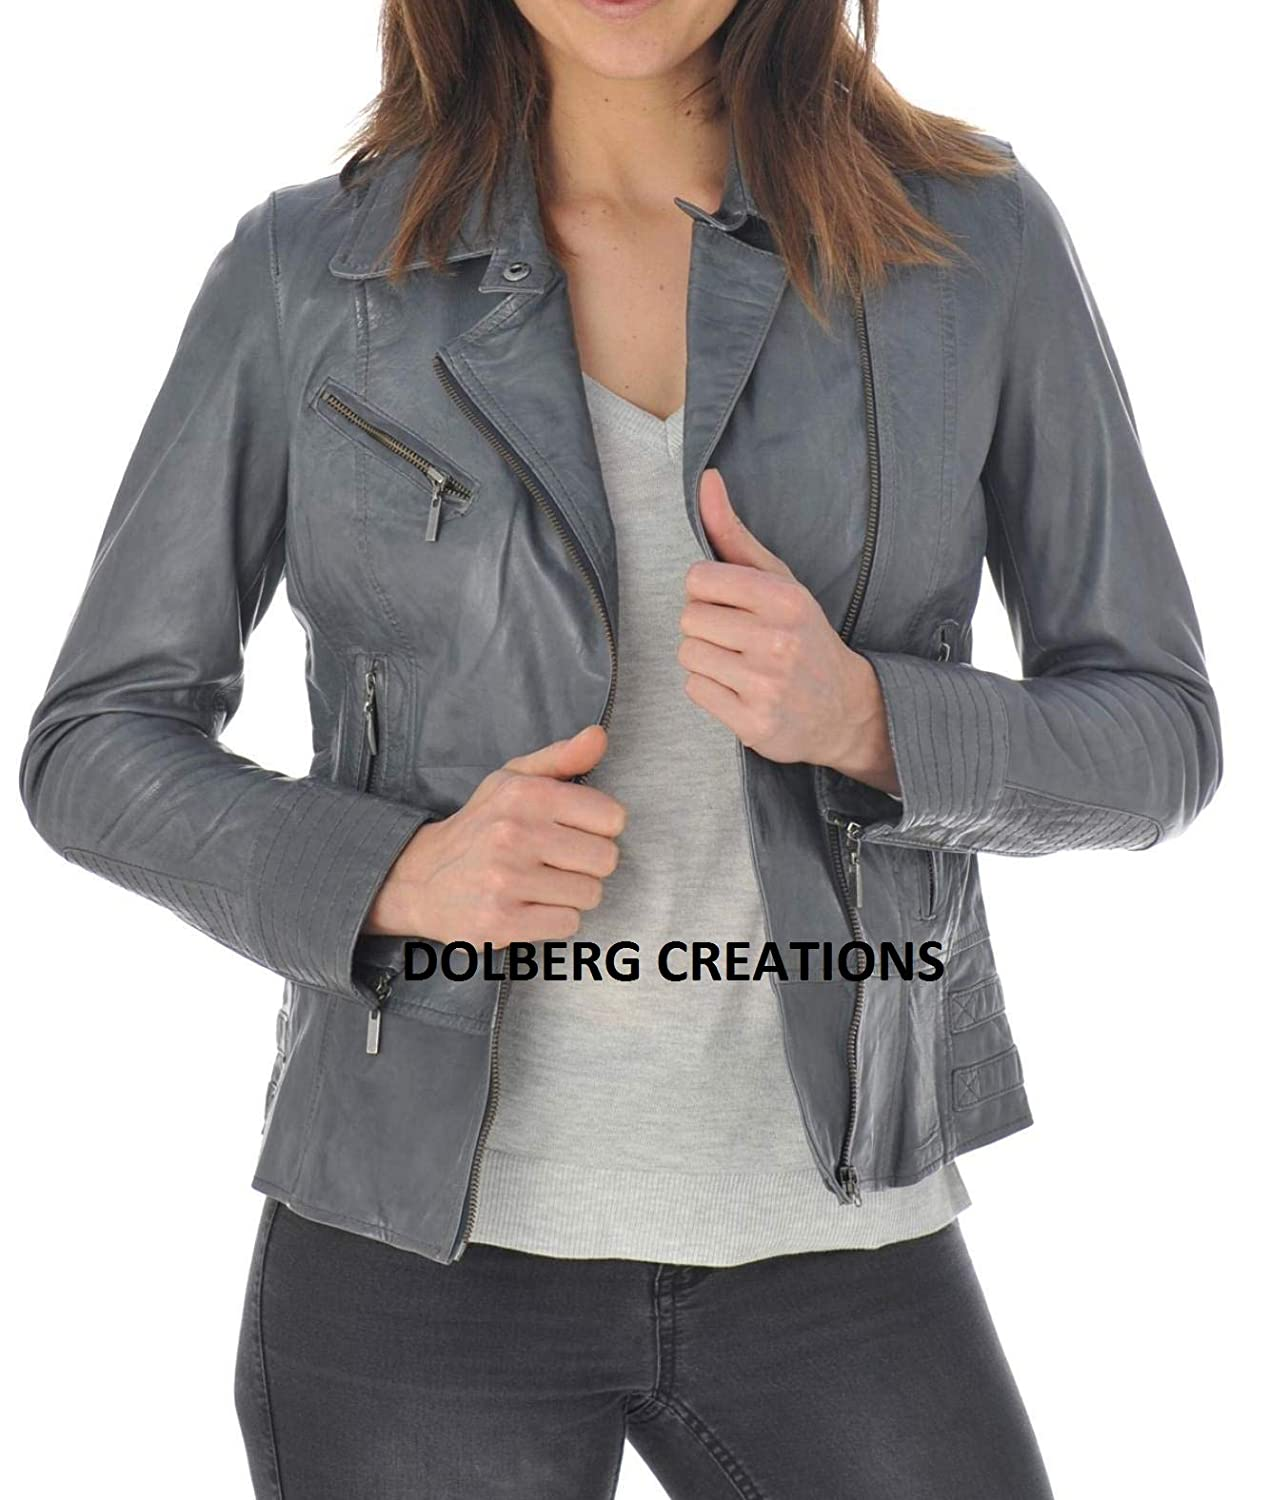 Greys4 DOLBERG CREATIONS Sheepskin Leather Jacket Womens